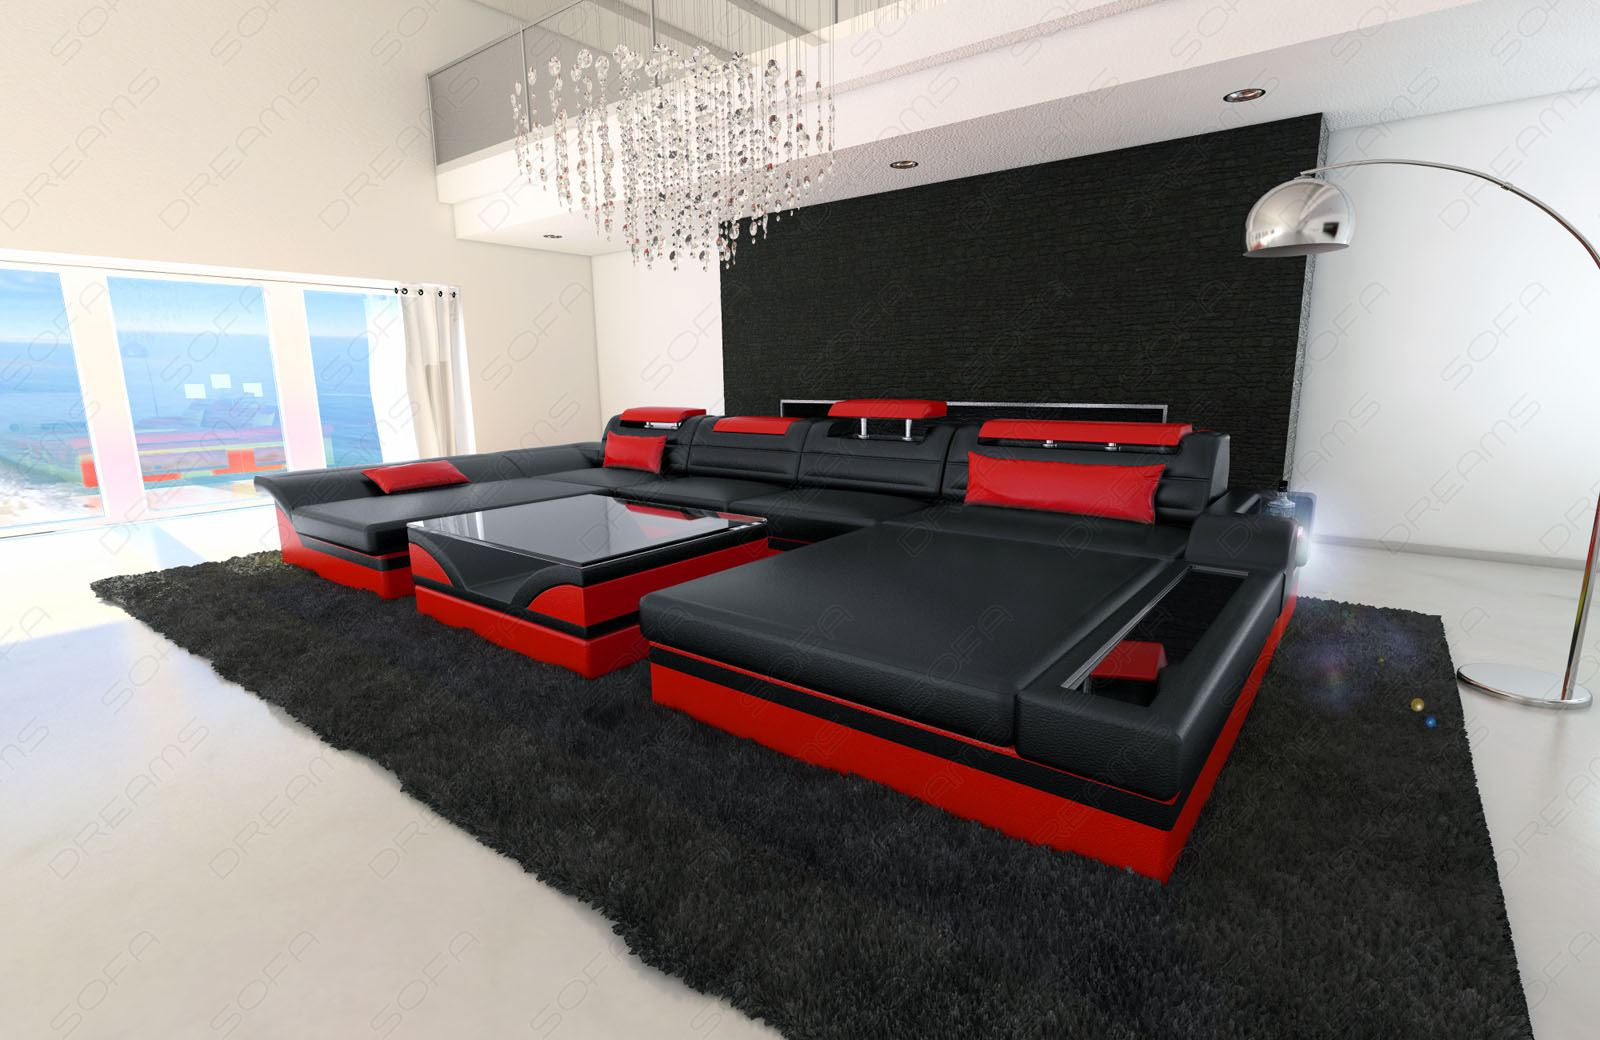 Couch u form  Big Sectional Sofa MONZA U-Shaped with LED Lights black red | eBay